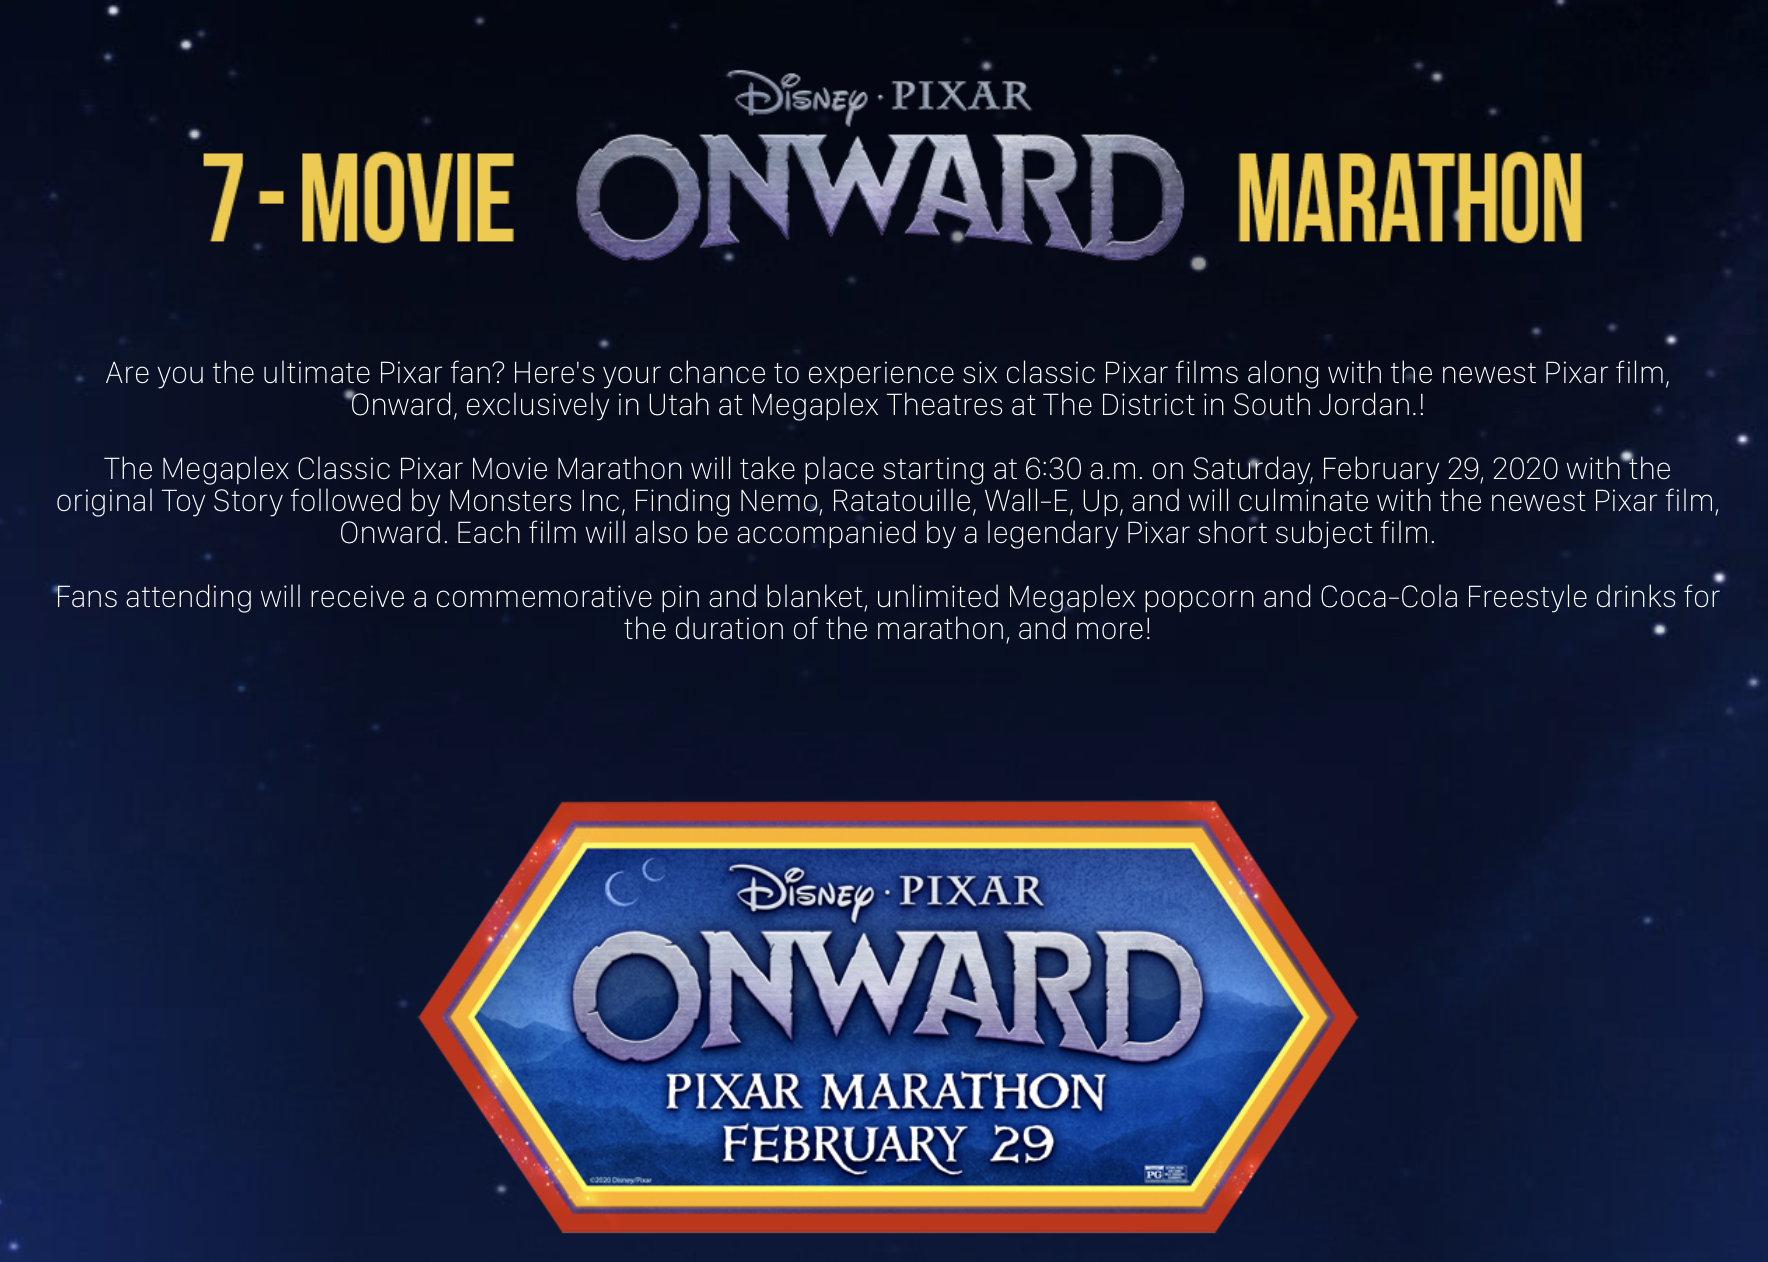 "Starting Saturday morning, the Megaplex Theatres will host a seven-film, 15-hour Pixar movie marathon ahead of the release of the new film ""Onward,"" which we will see in an advanced screening."